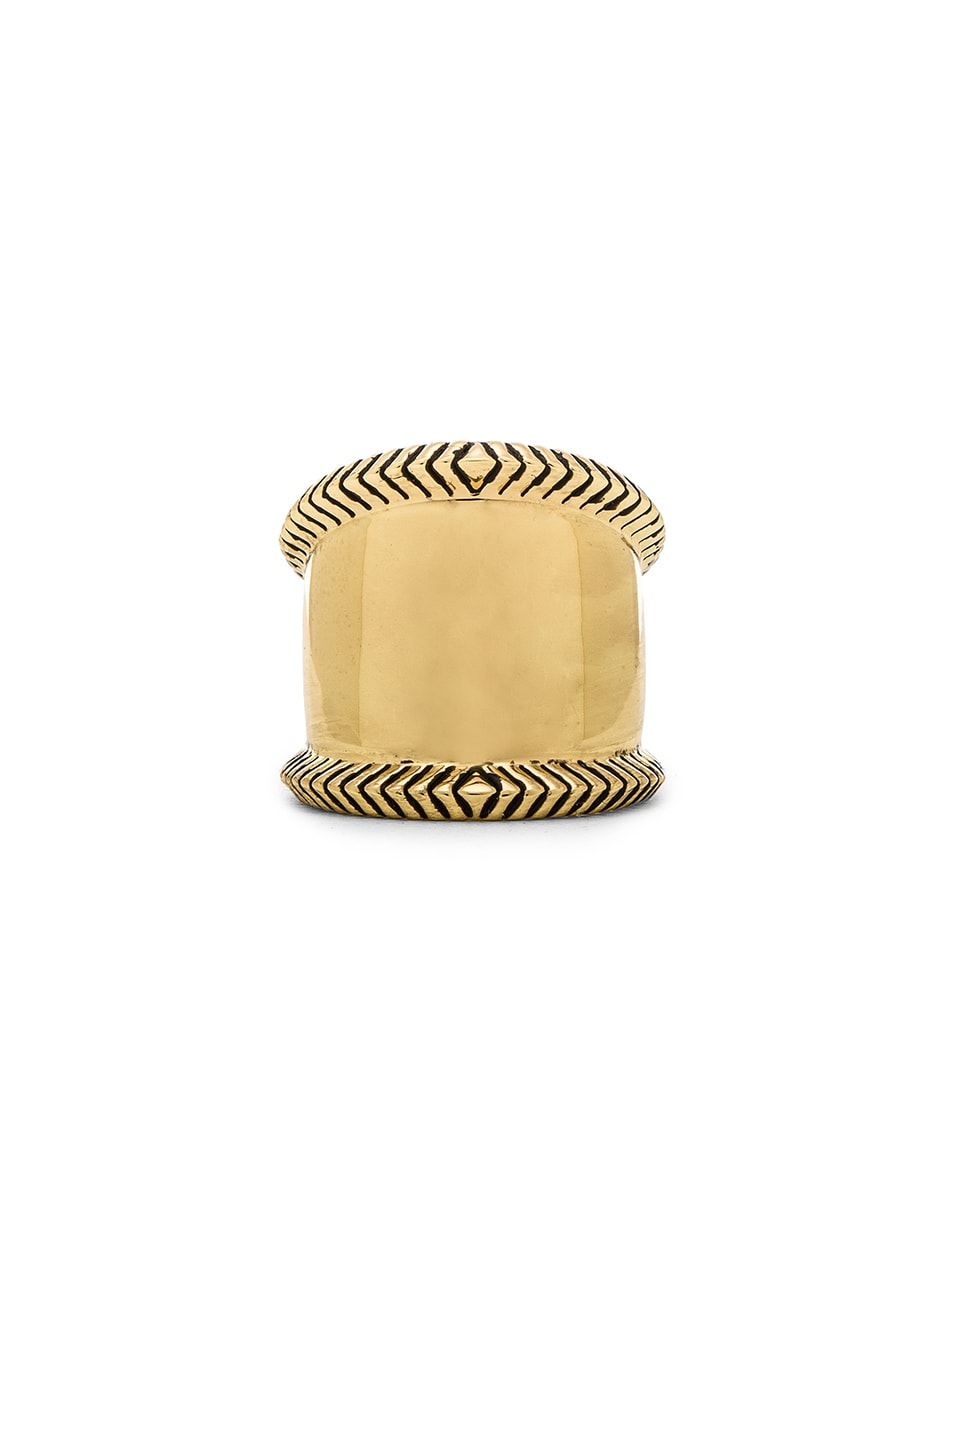 House of Harlow 1960 House of Harlow Tambo River Ring in Gold